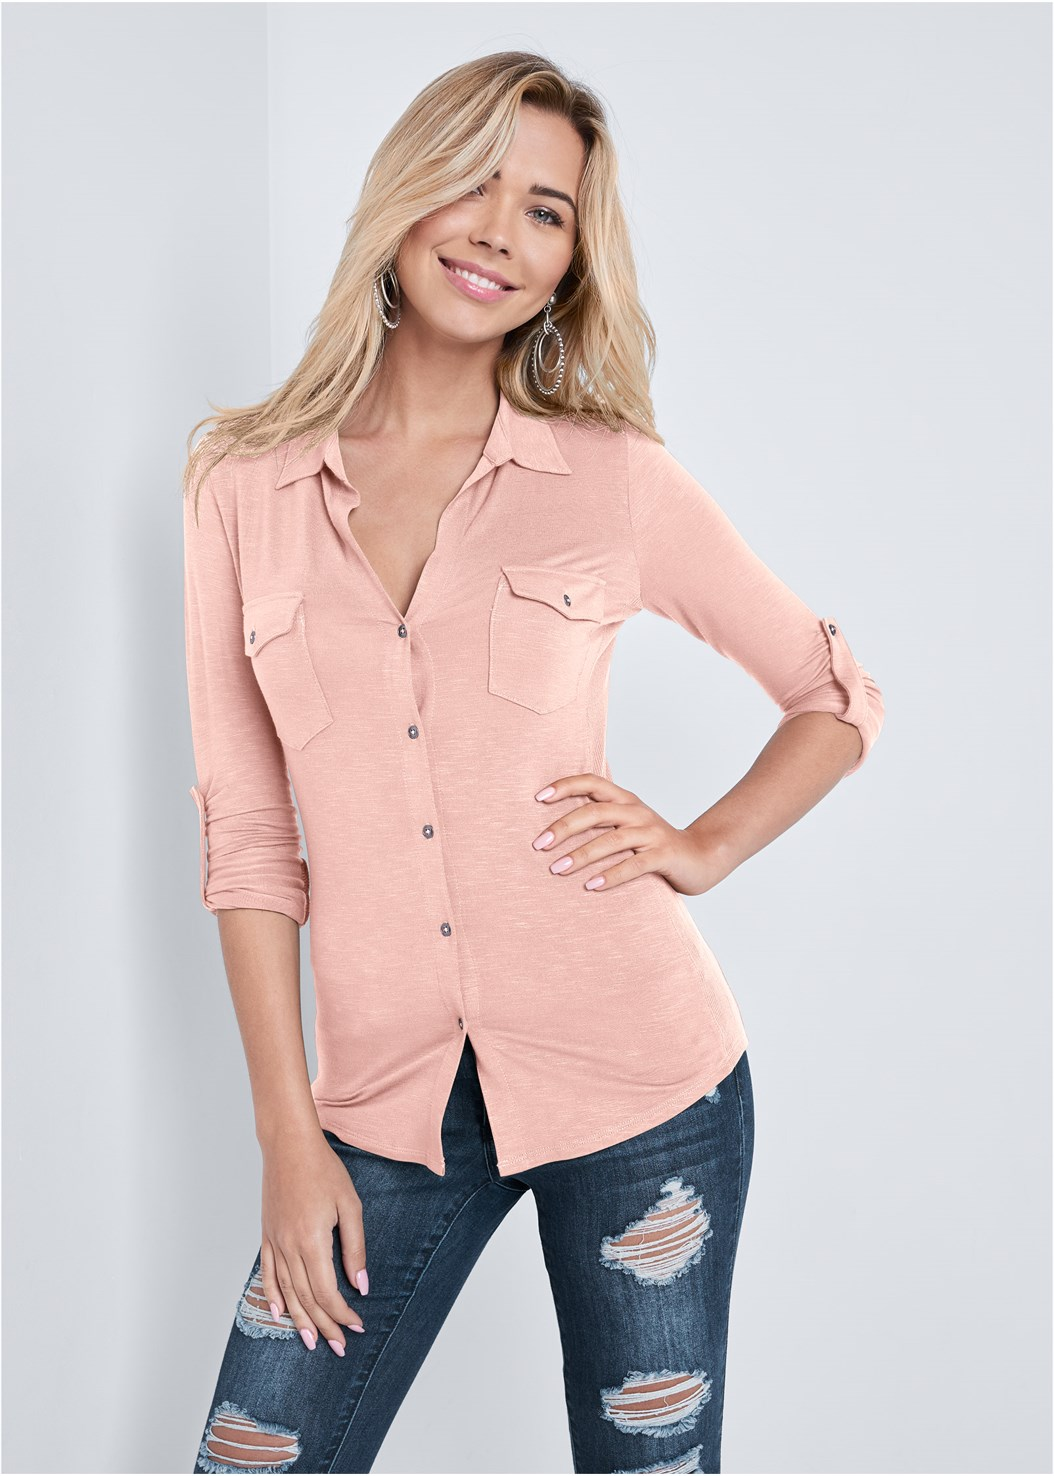 Pocket Button Up Top,Ripped Bum Lifter Jeans,Studded Matte Hoops